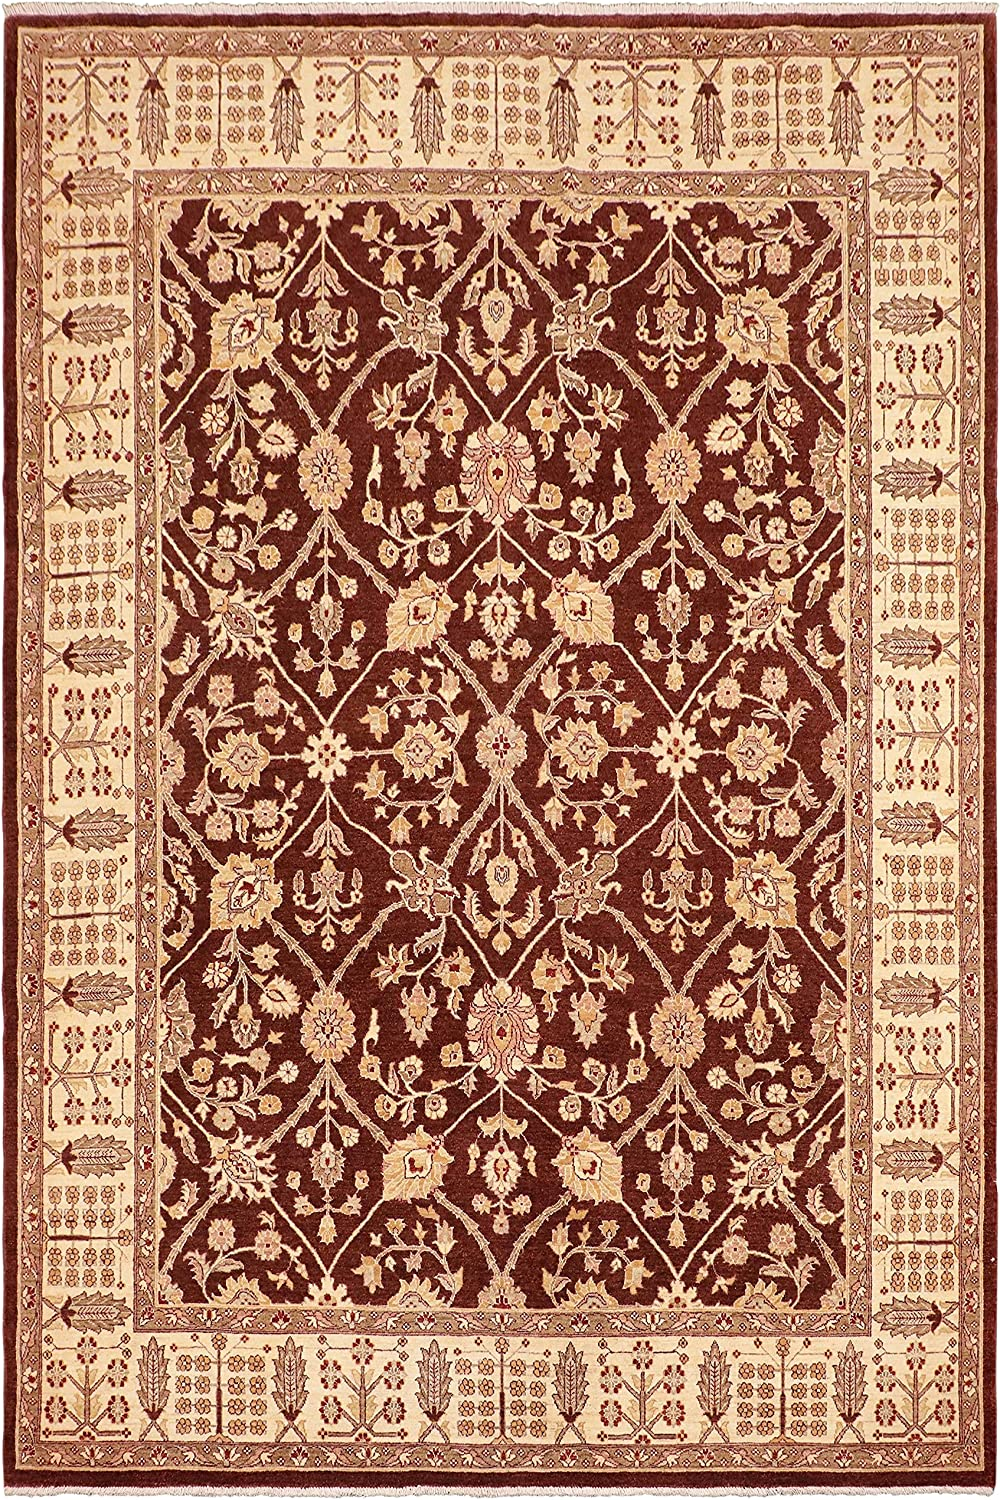 Inventory unisex cleanup selling sale Oriental Ziegler Xenia Brown Ivory Wool Rug 10'7'' x 8'4'' -